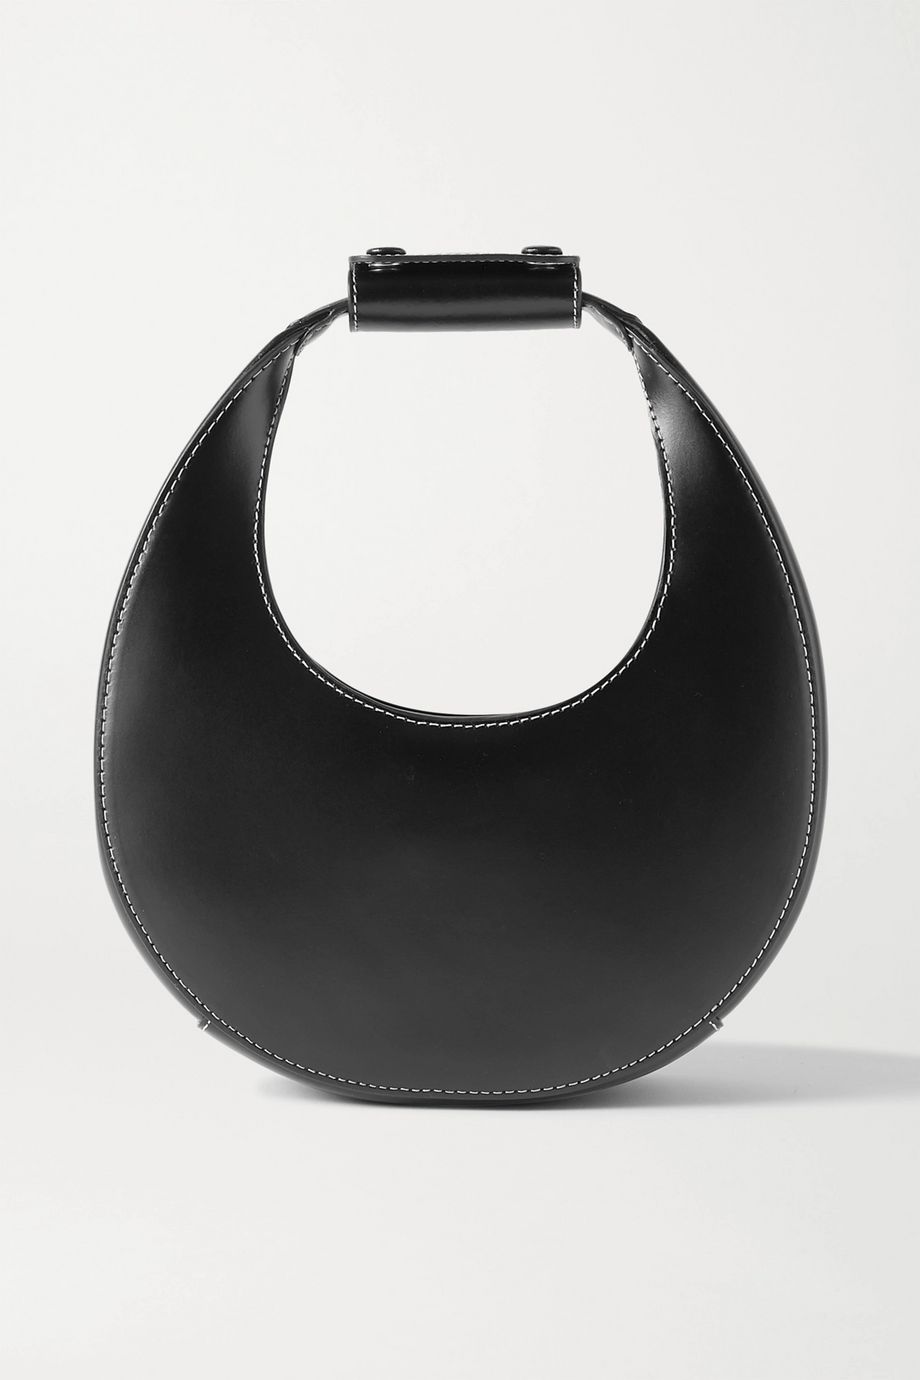 STAUD Moon mini leather tote